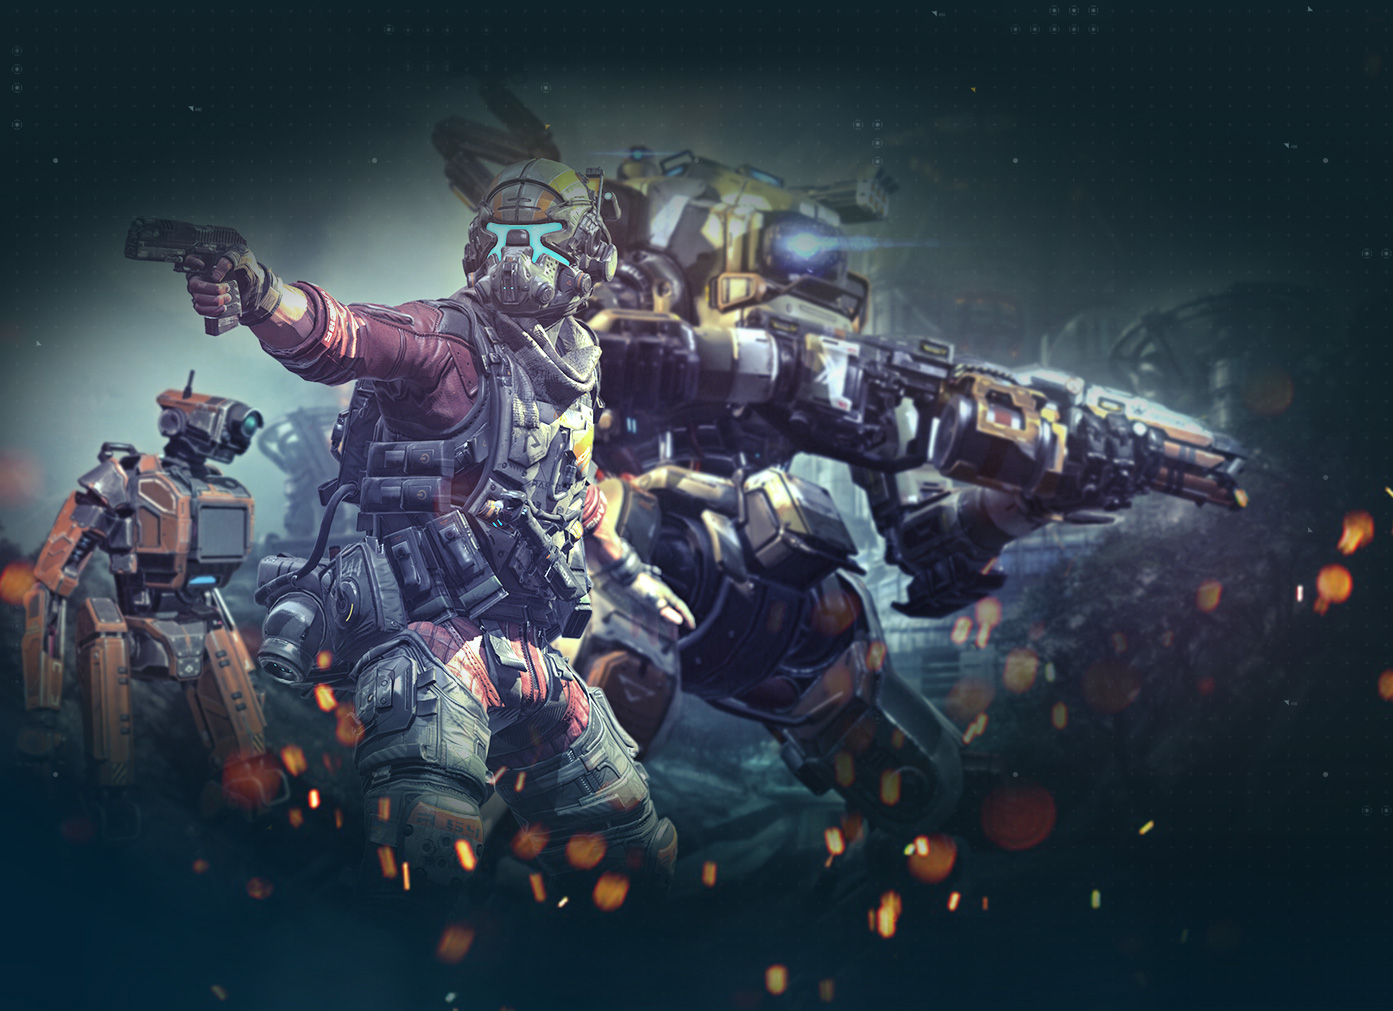 Live Wallpaper Pubg This Titanfall 2 Video Shows Off All Of The Weapons Camos